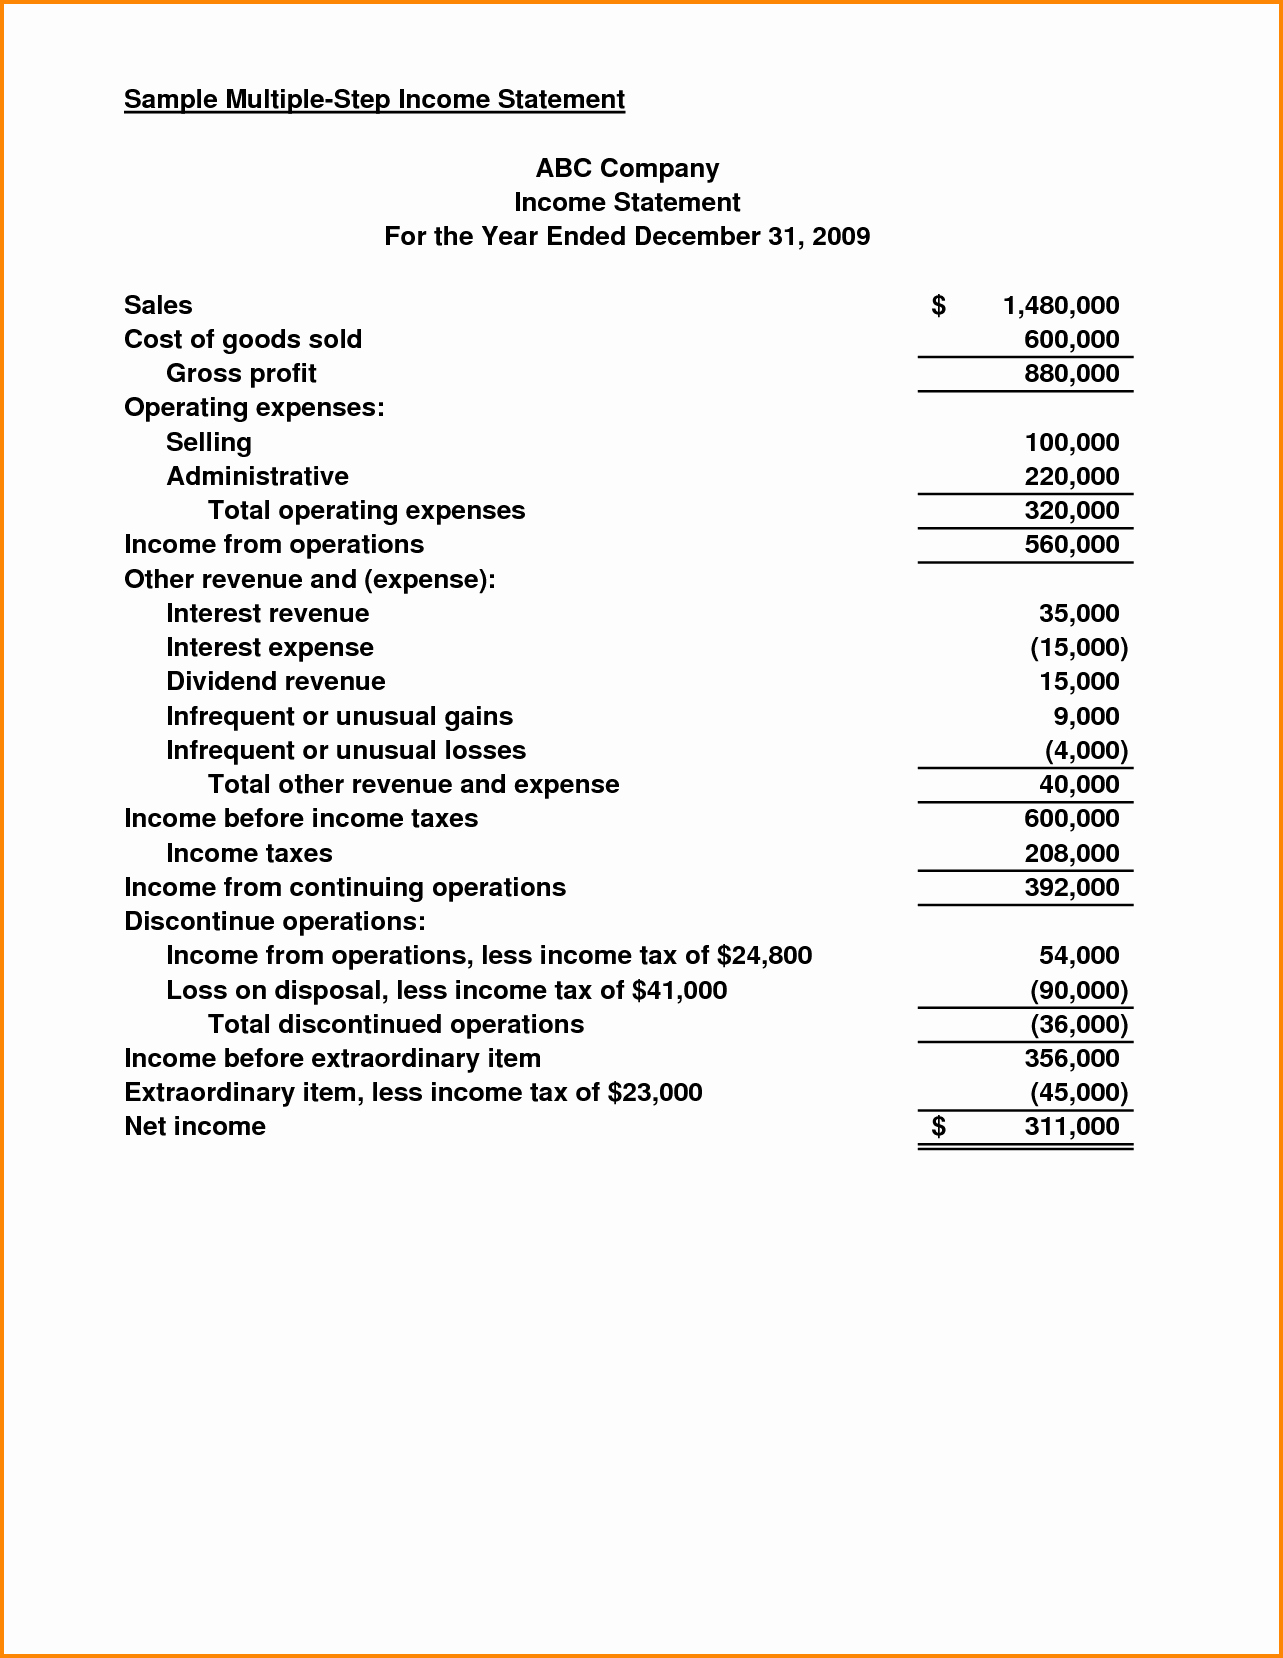 Sample Profit & Loss Statement Best Of Sample Profit and Loss Statement